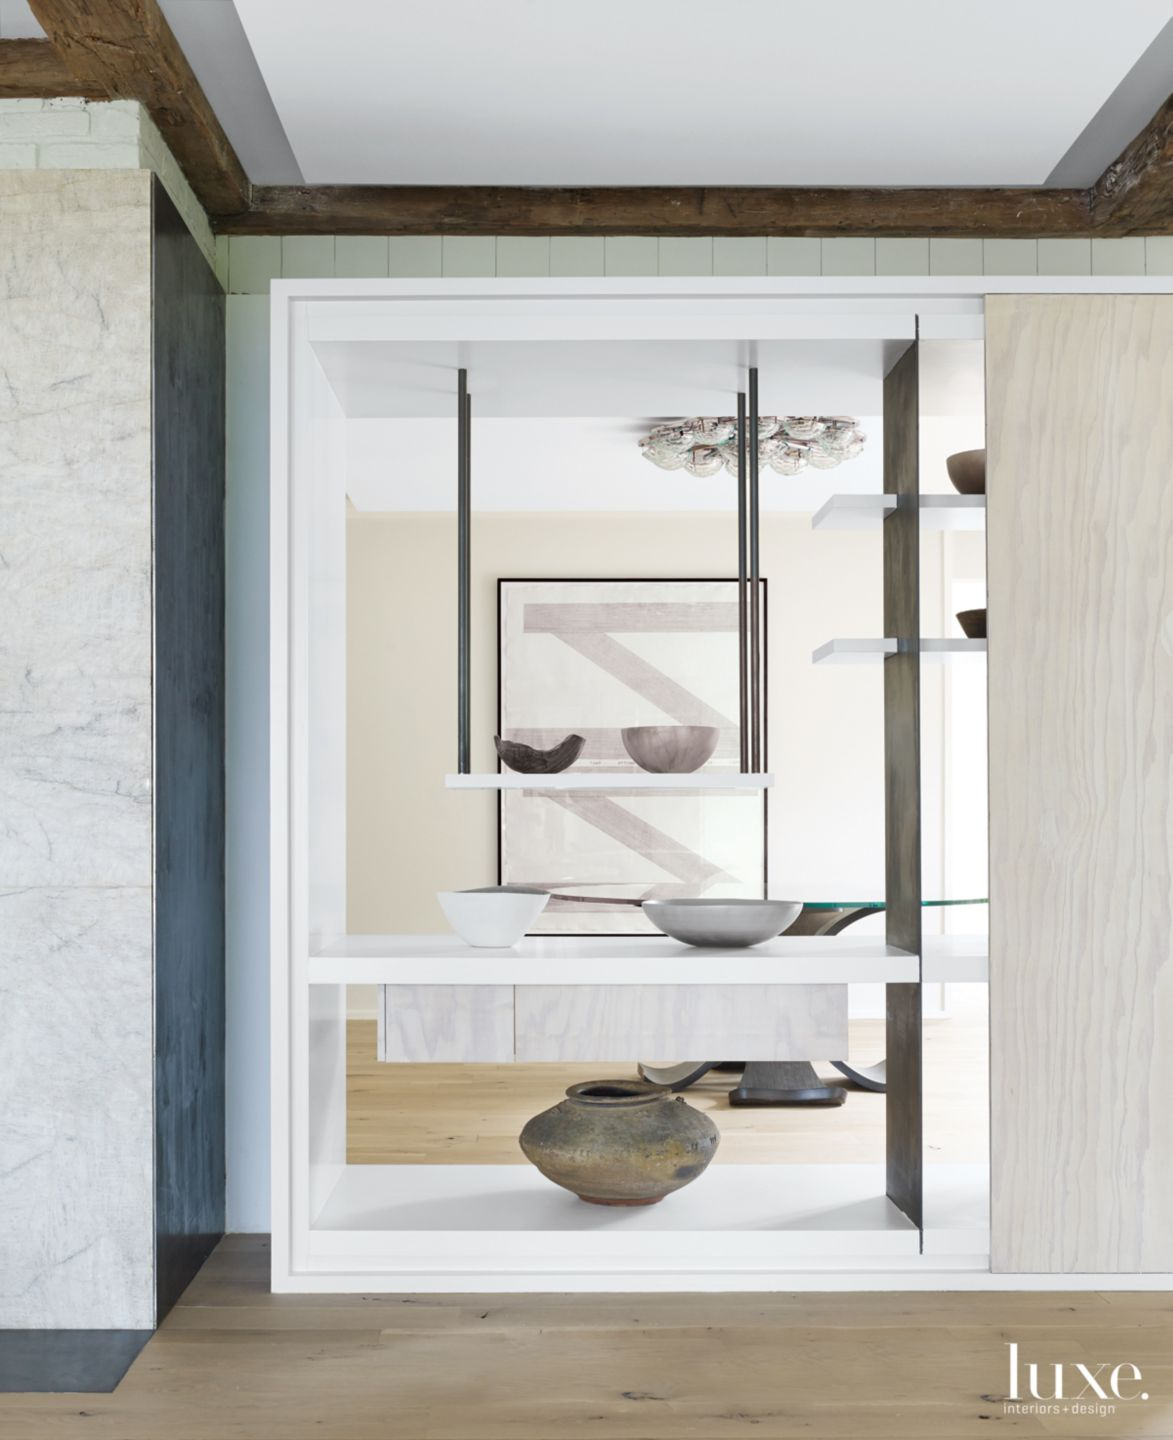 Modern Neutral Shelving with Ceramic Pieces